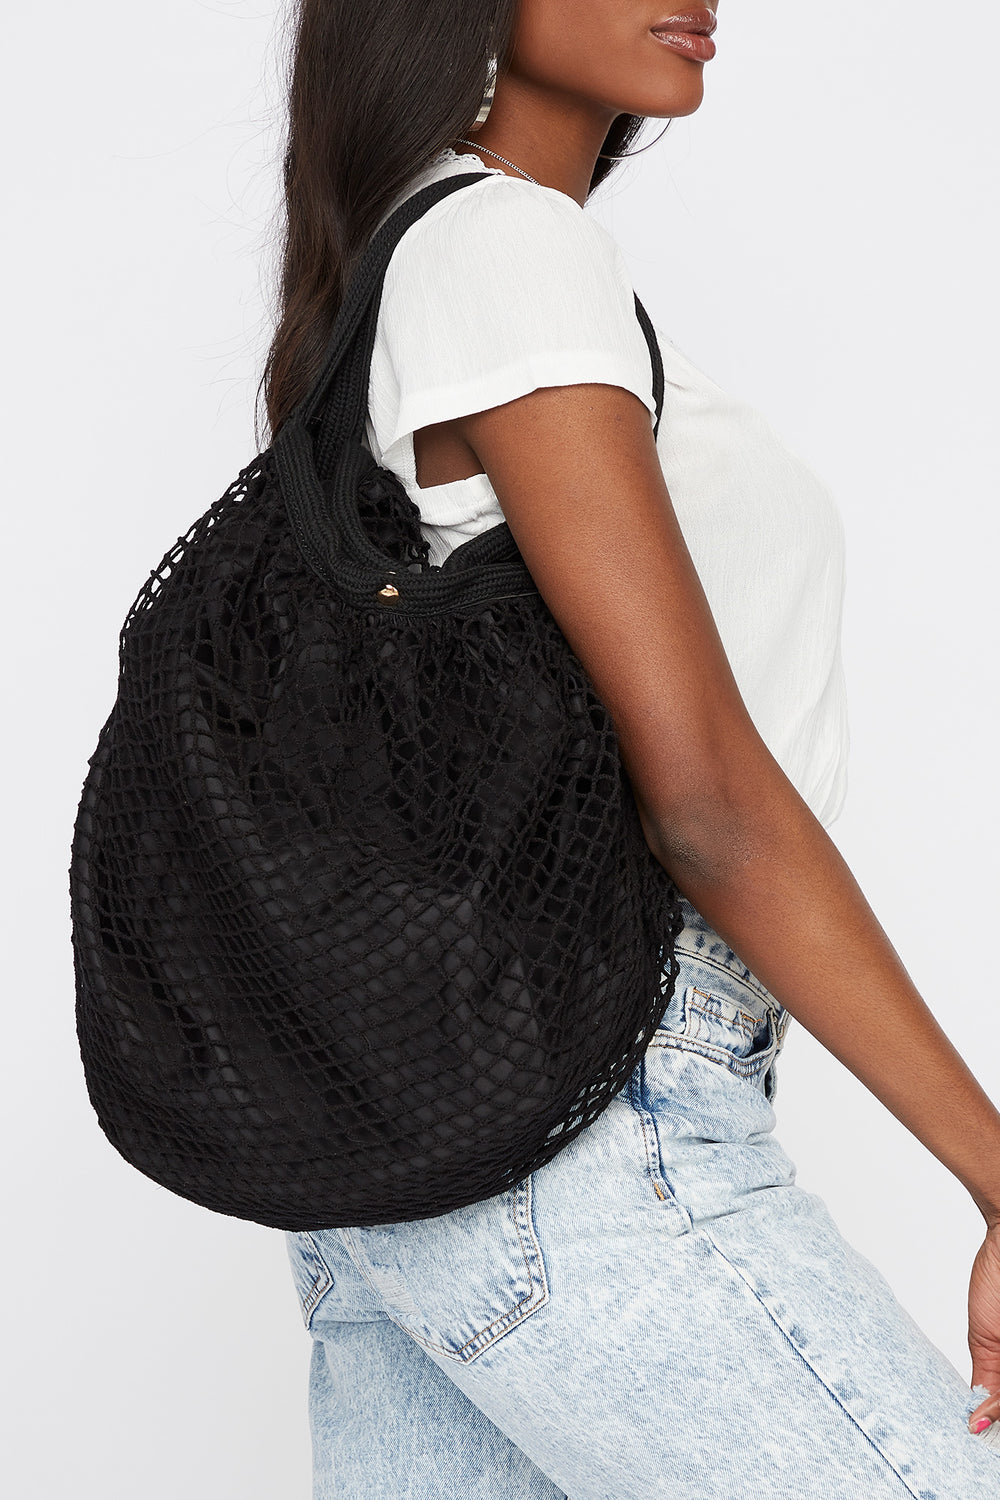 Net Shoulder Bag Black